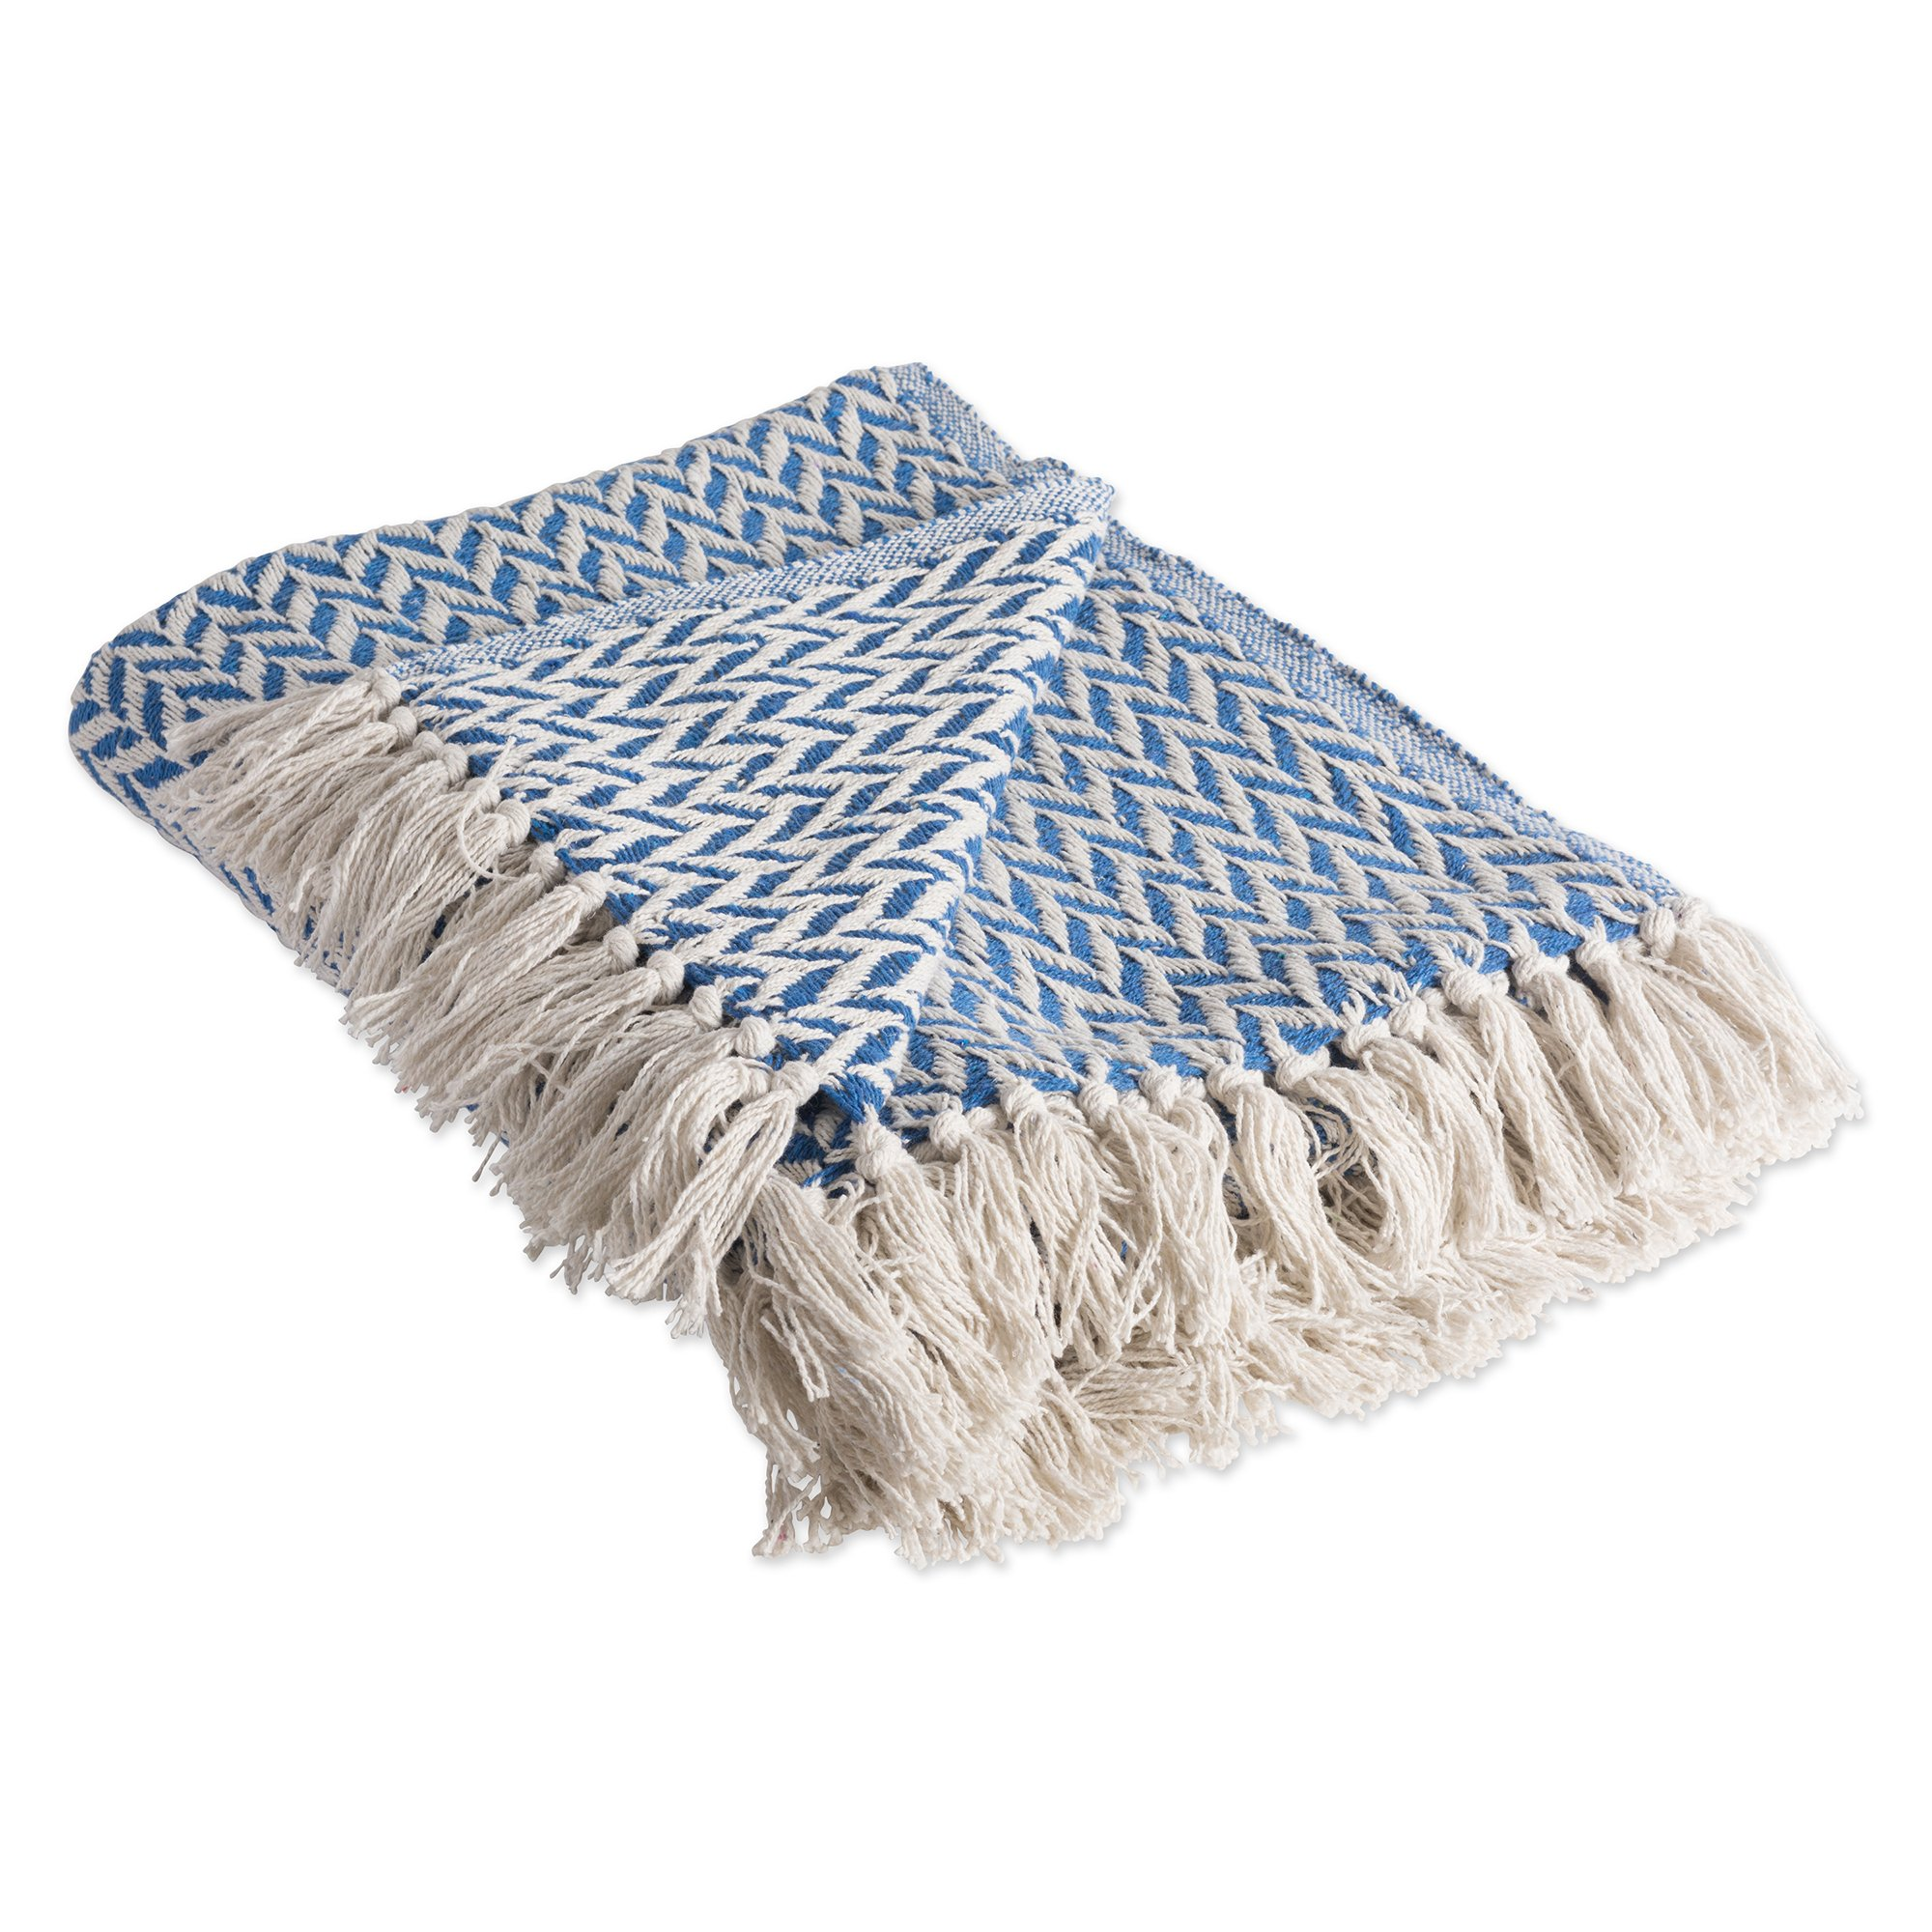 DII Rustic Farmhouse Cotton Zig-Zag Blanket Throw with Fringe For Chair, Couch, Picnic, Camping, Beach, & Everyday Use , 50 x 60'' - Silverlake